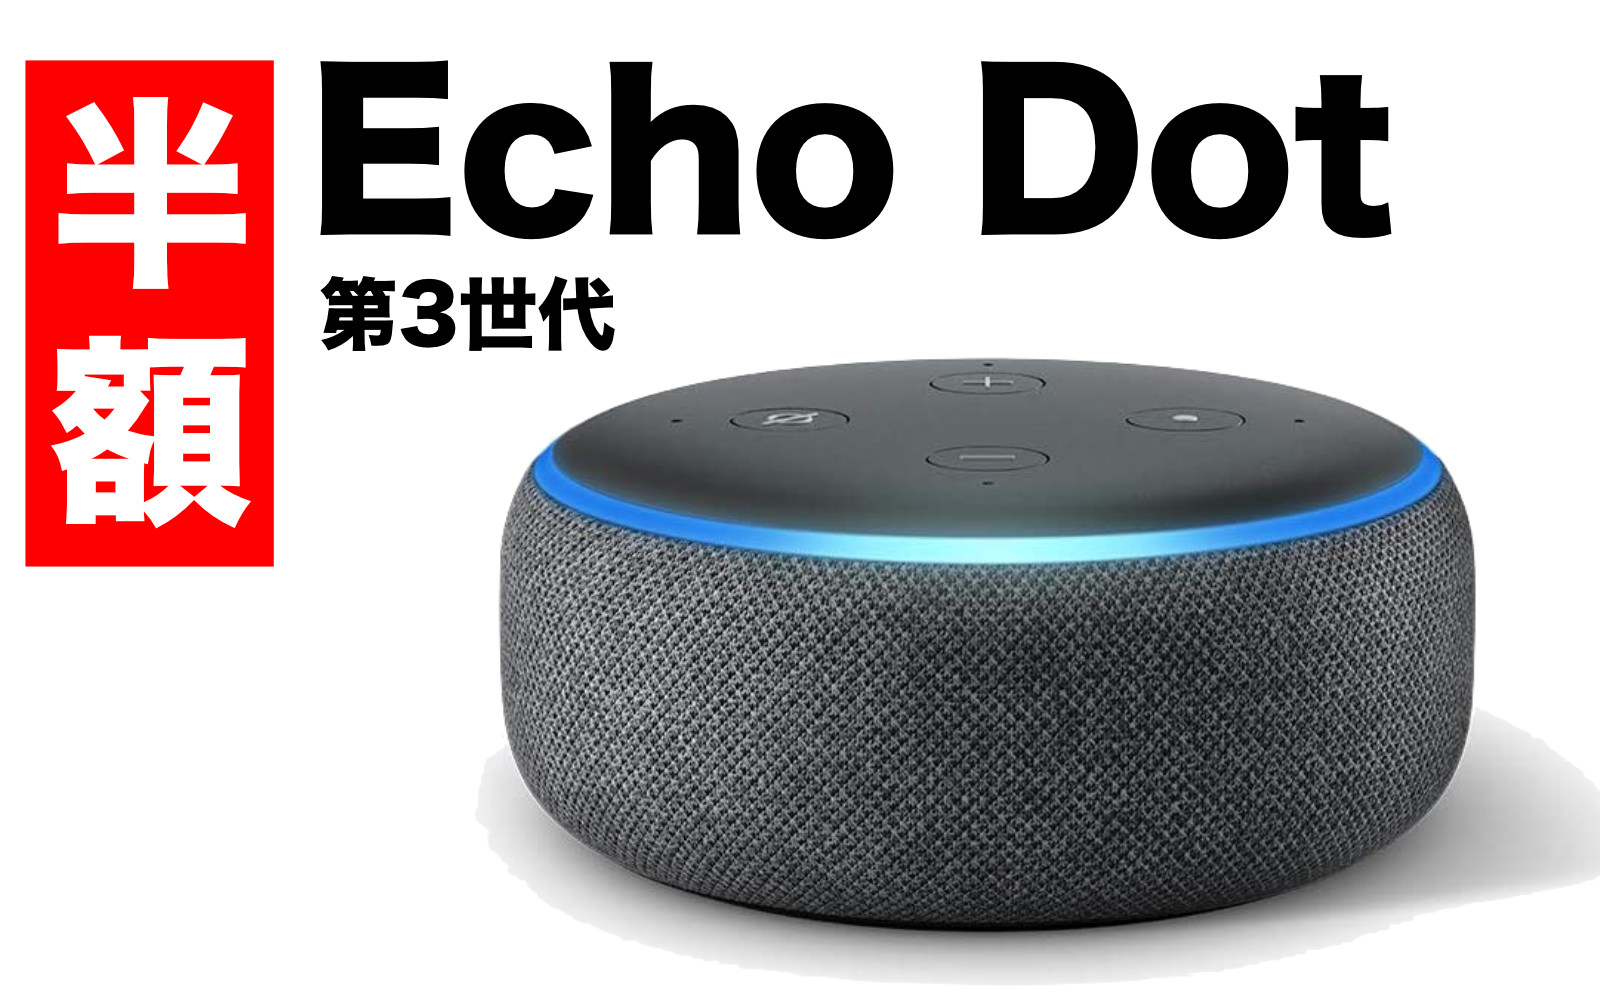 Echo Dot on sale